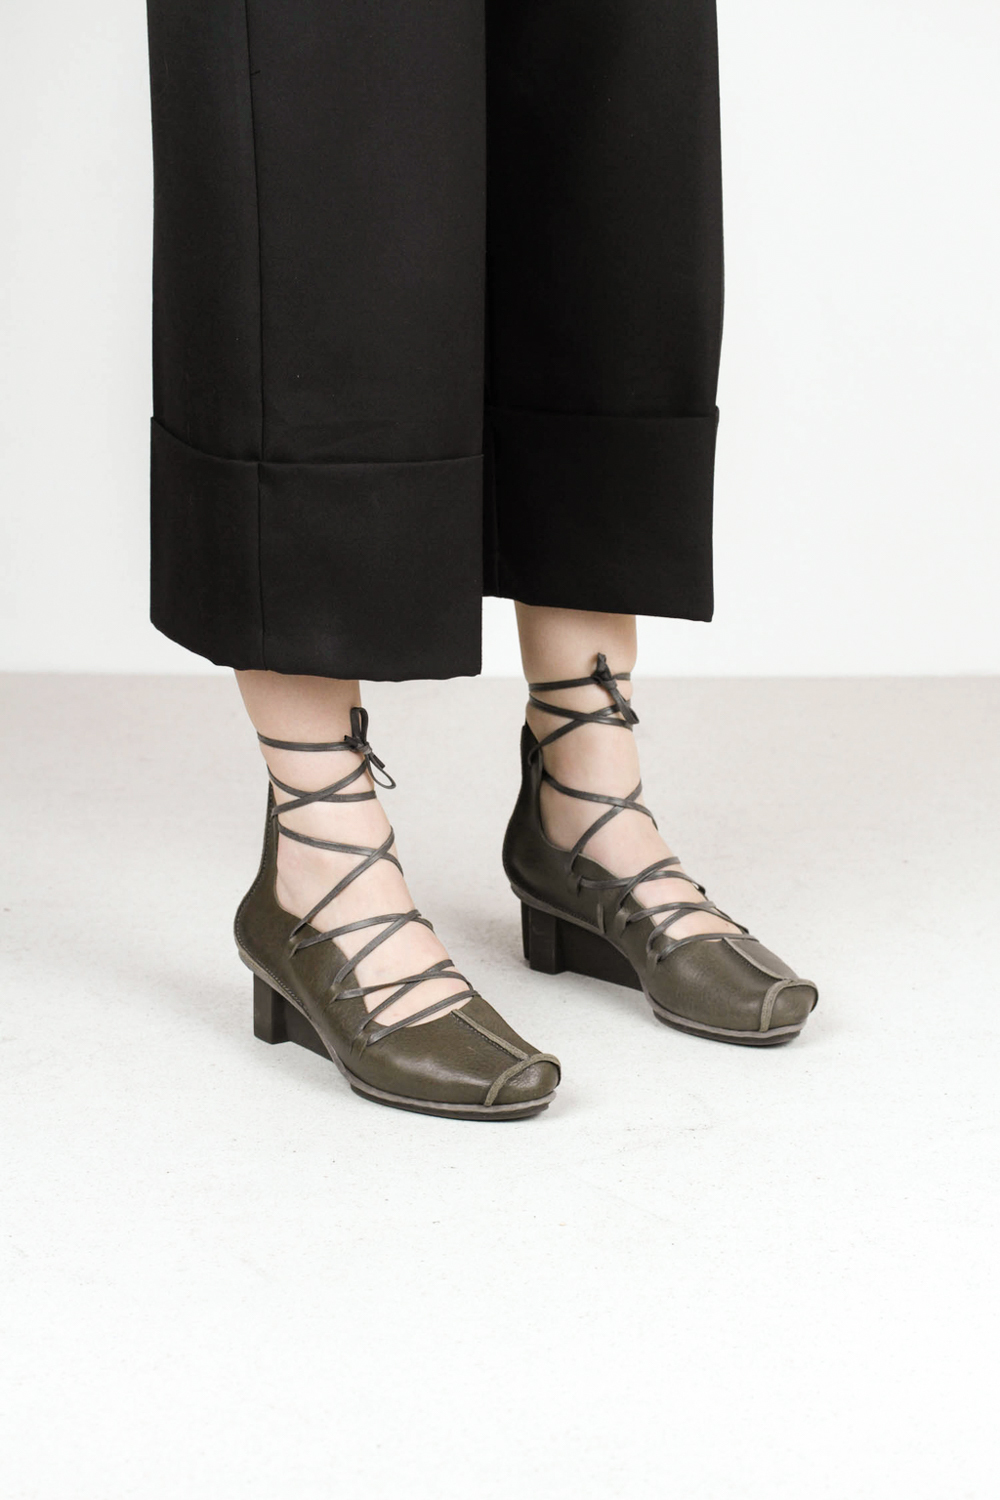 Trippen blade f smog waw xo smg leather sandals